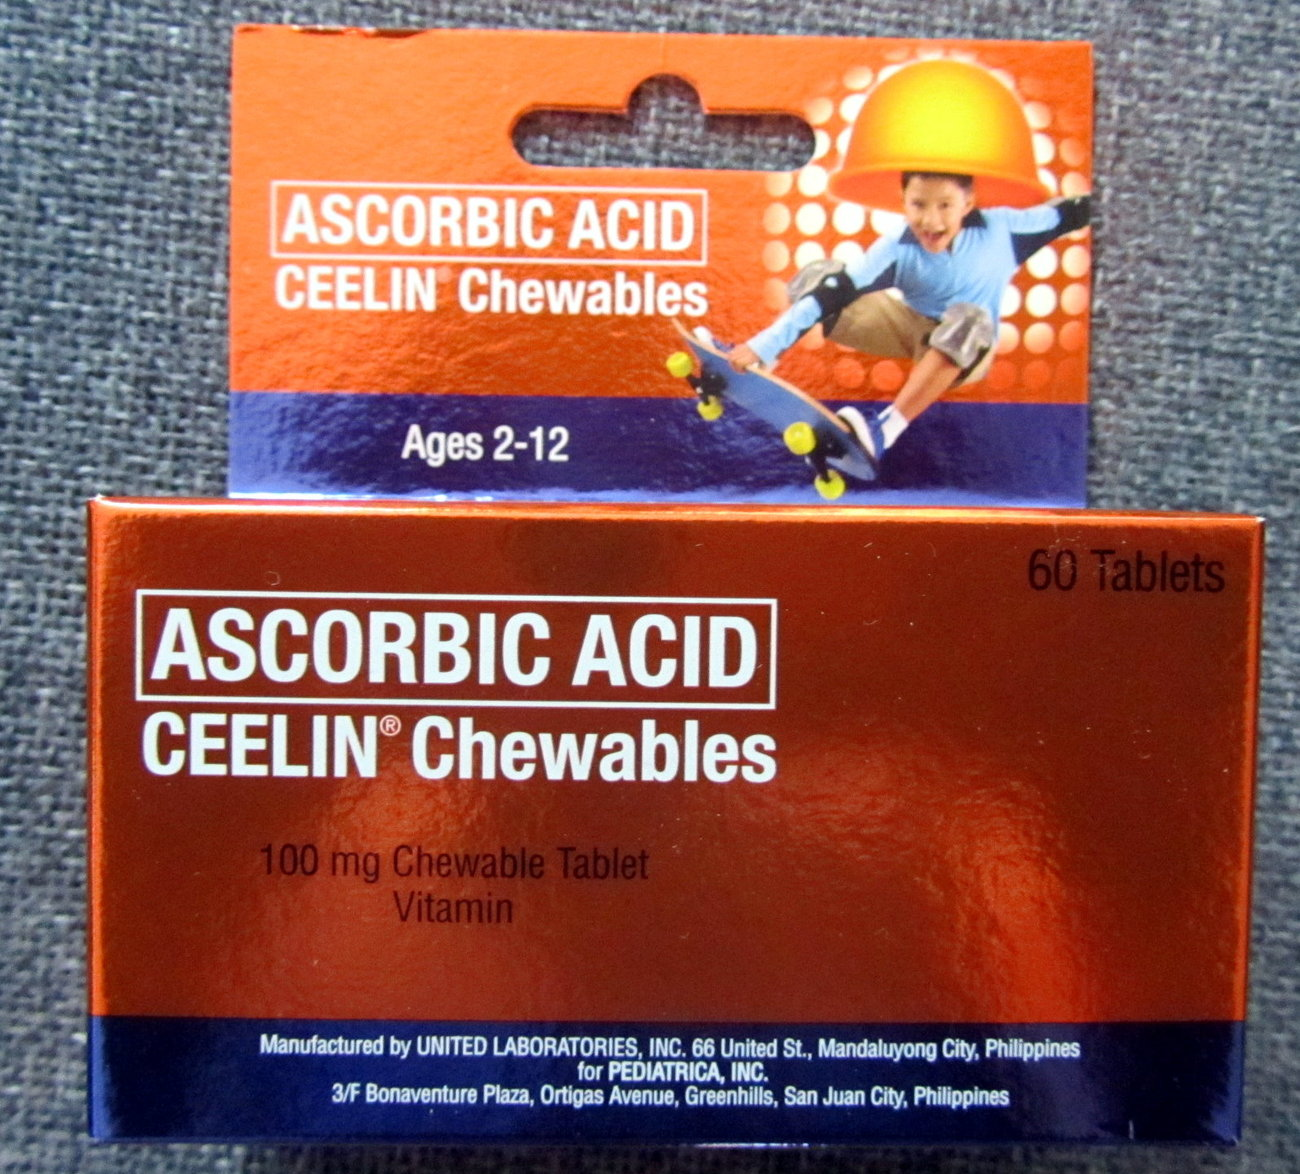 CEELIN Ascorbic Acid Chewable 60 Tablets for KIDS